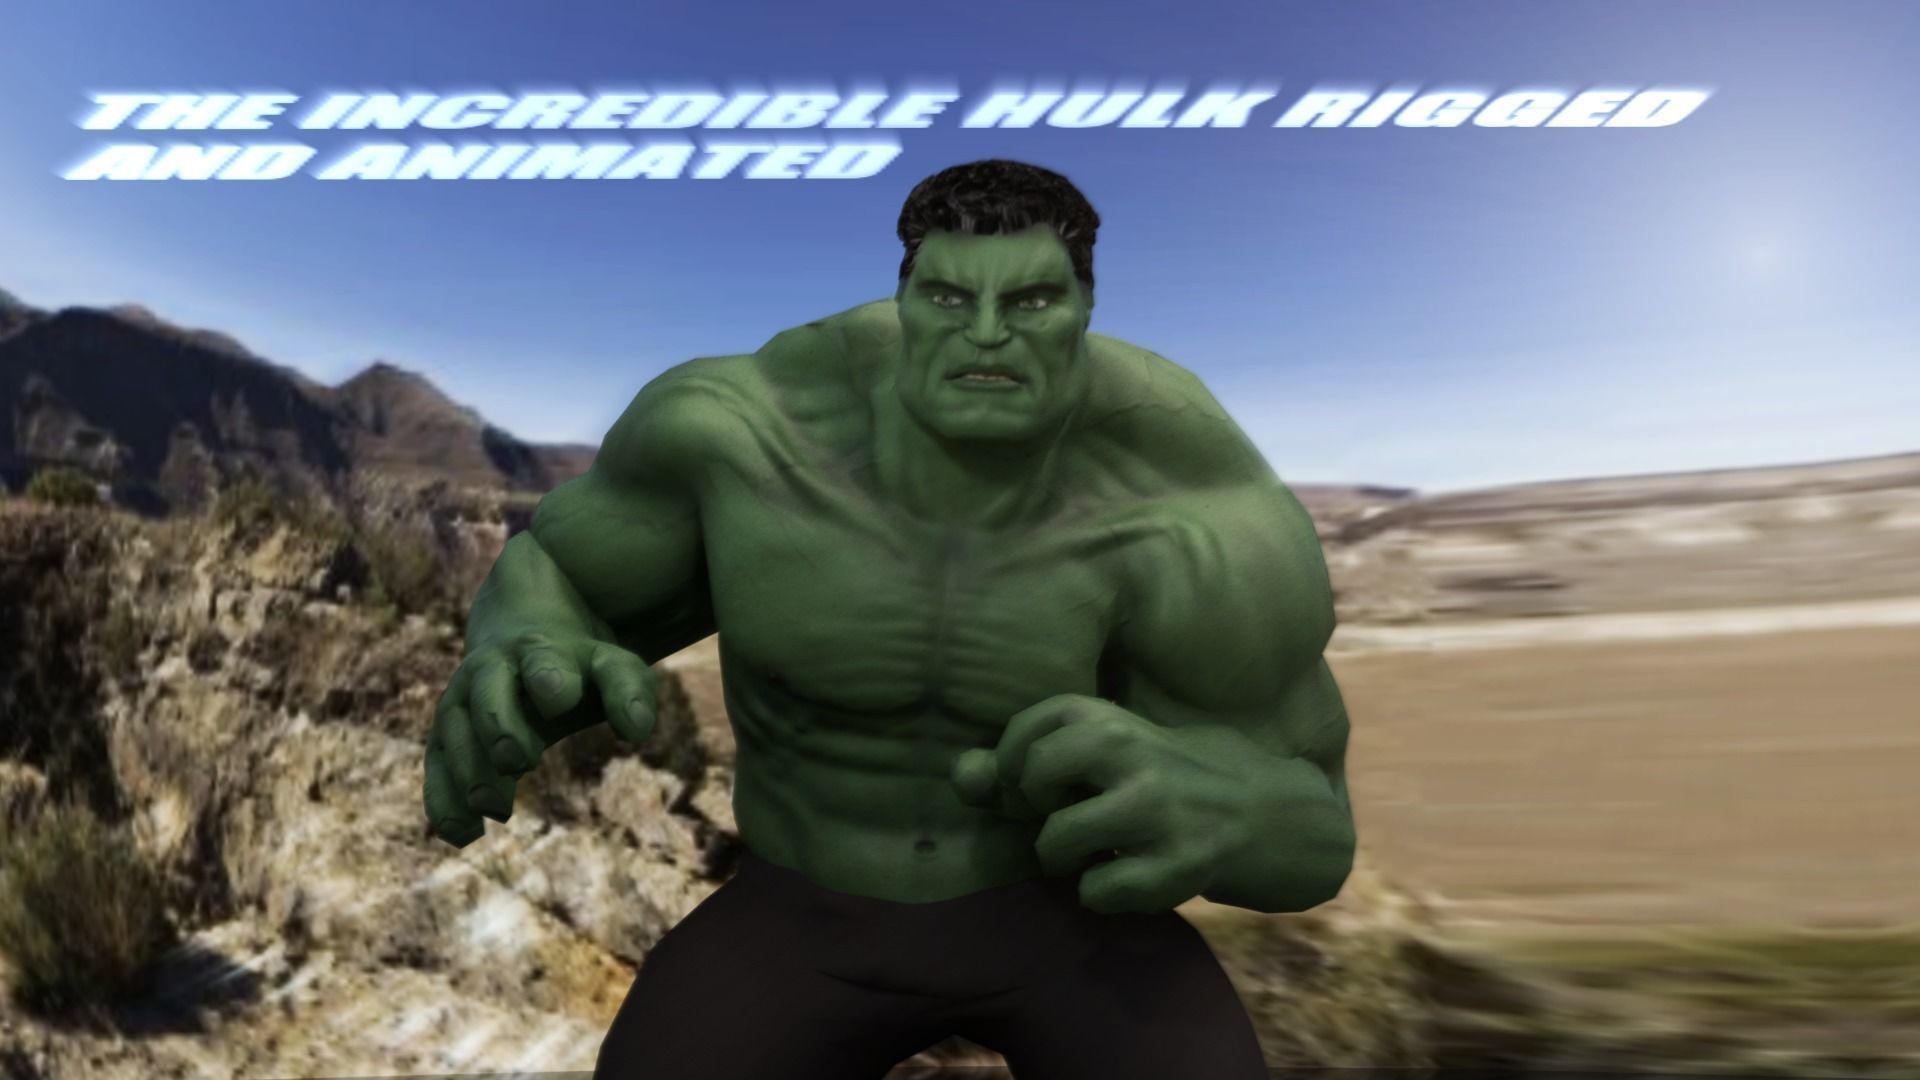 Hulk 2003 Inspired Rigged And Animated